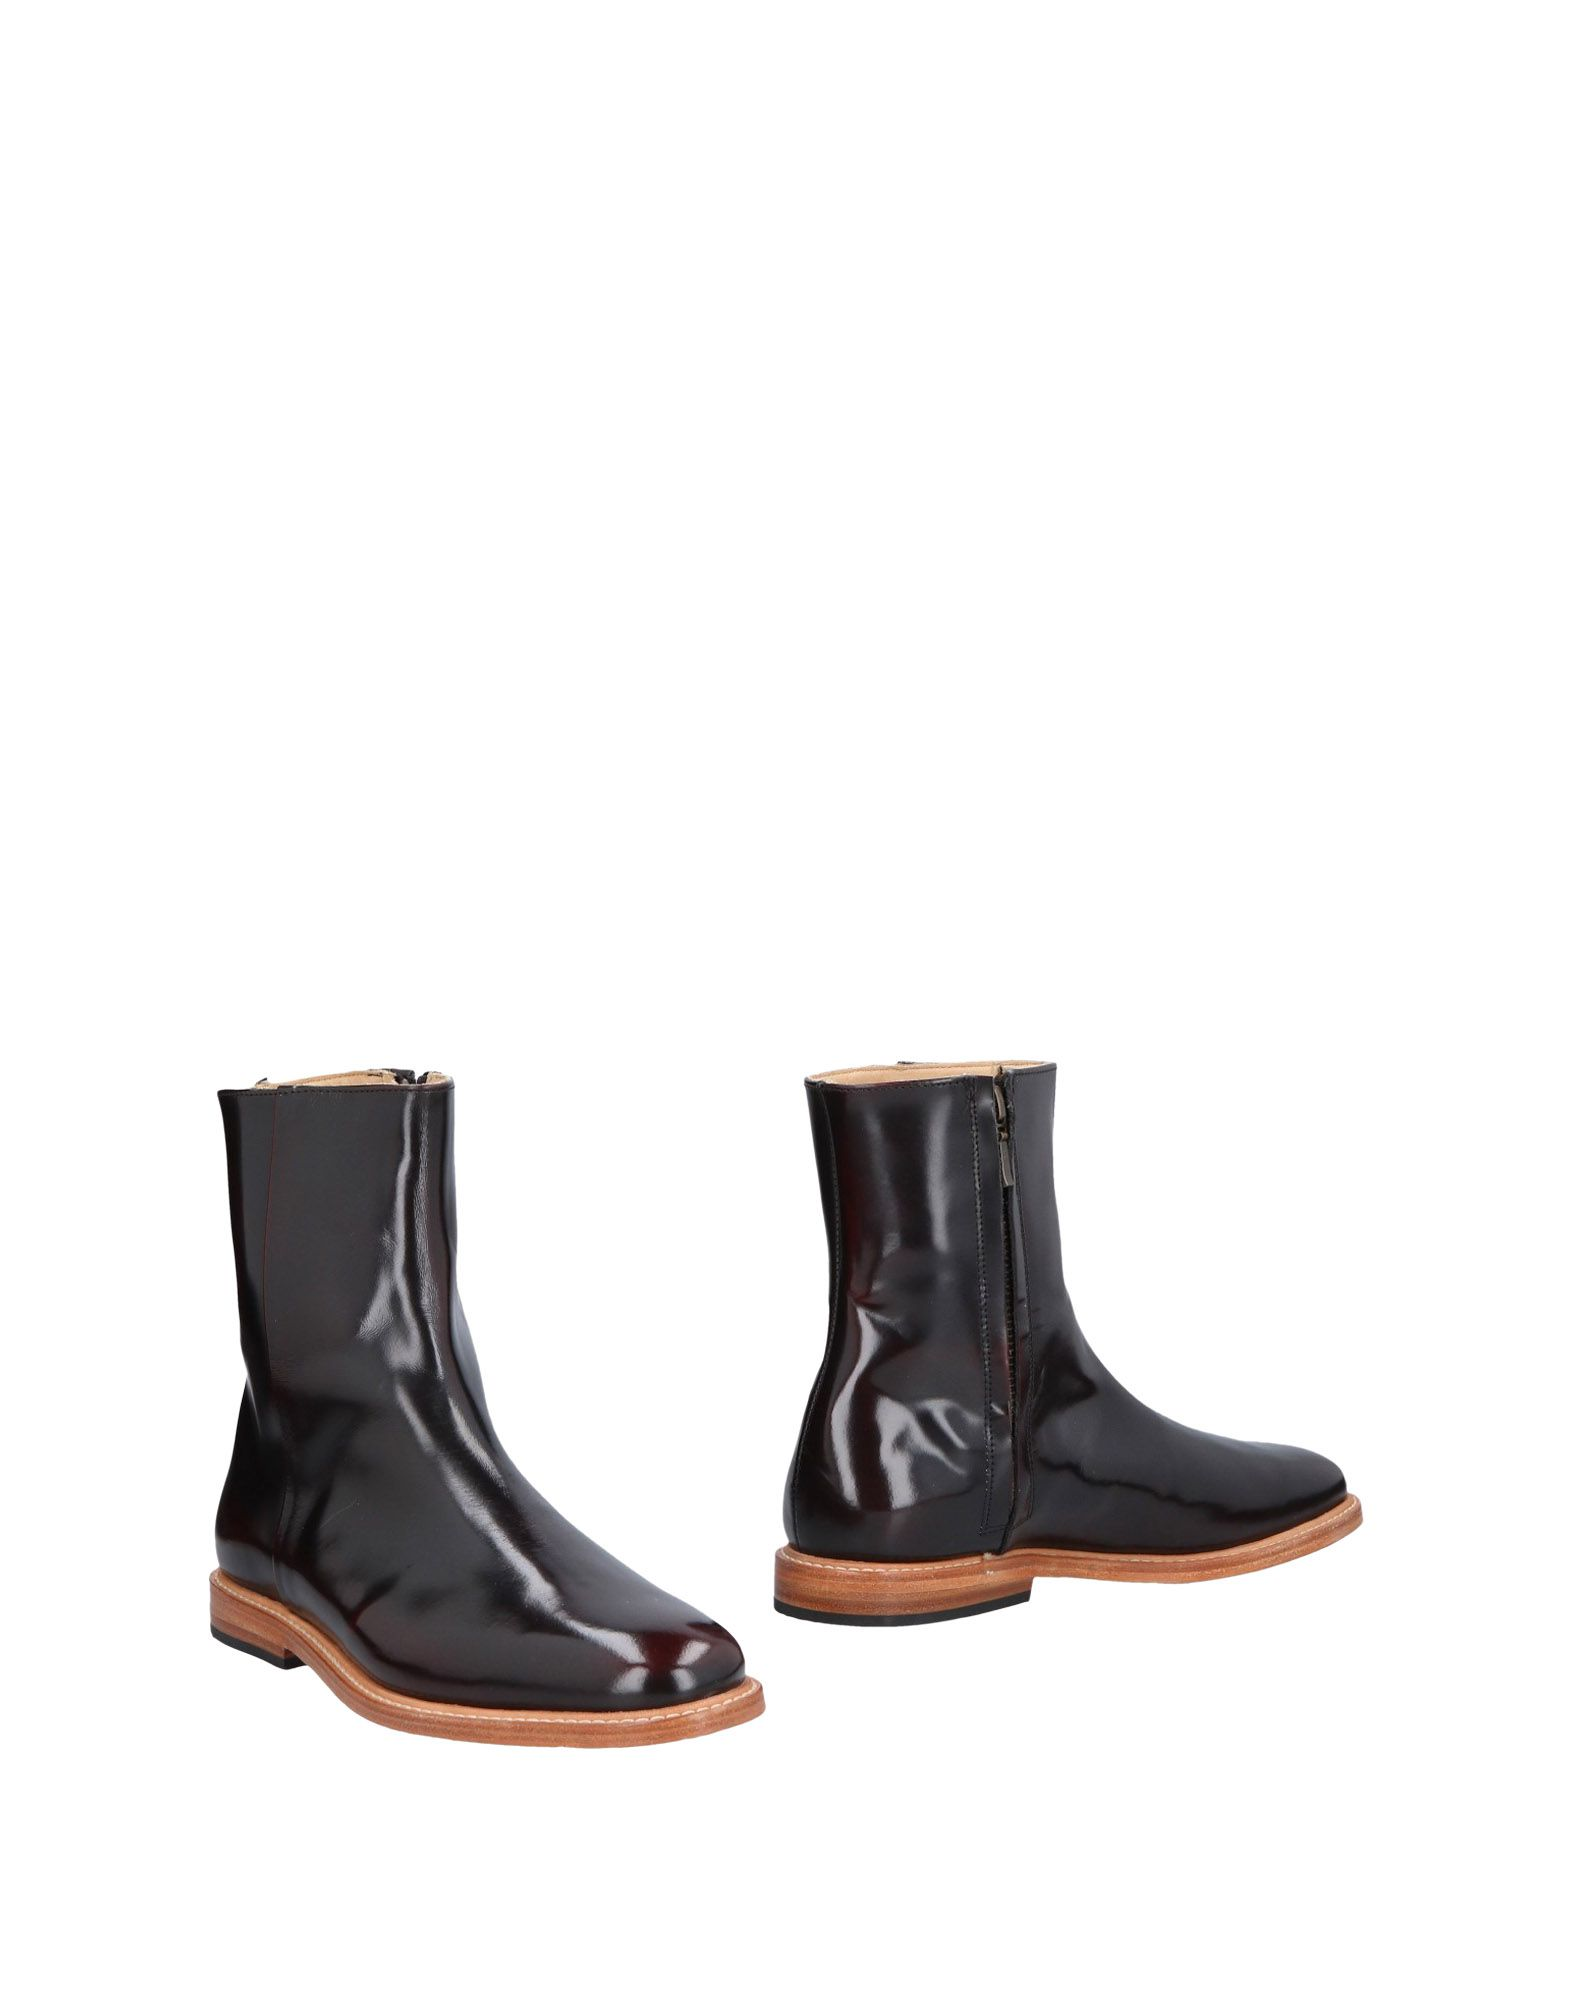 DIEPPA RESTREPO Ankle Boot in Dark Brown